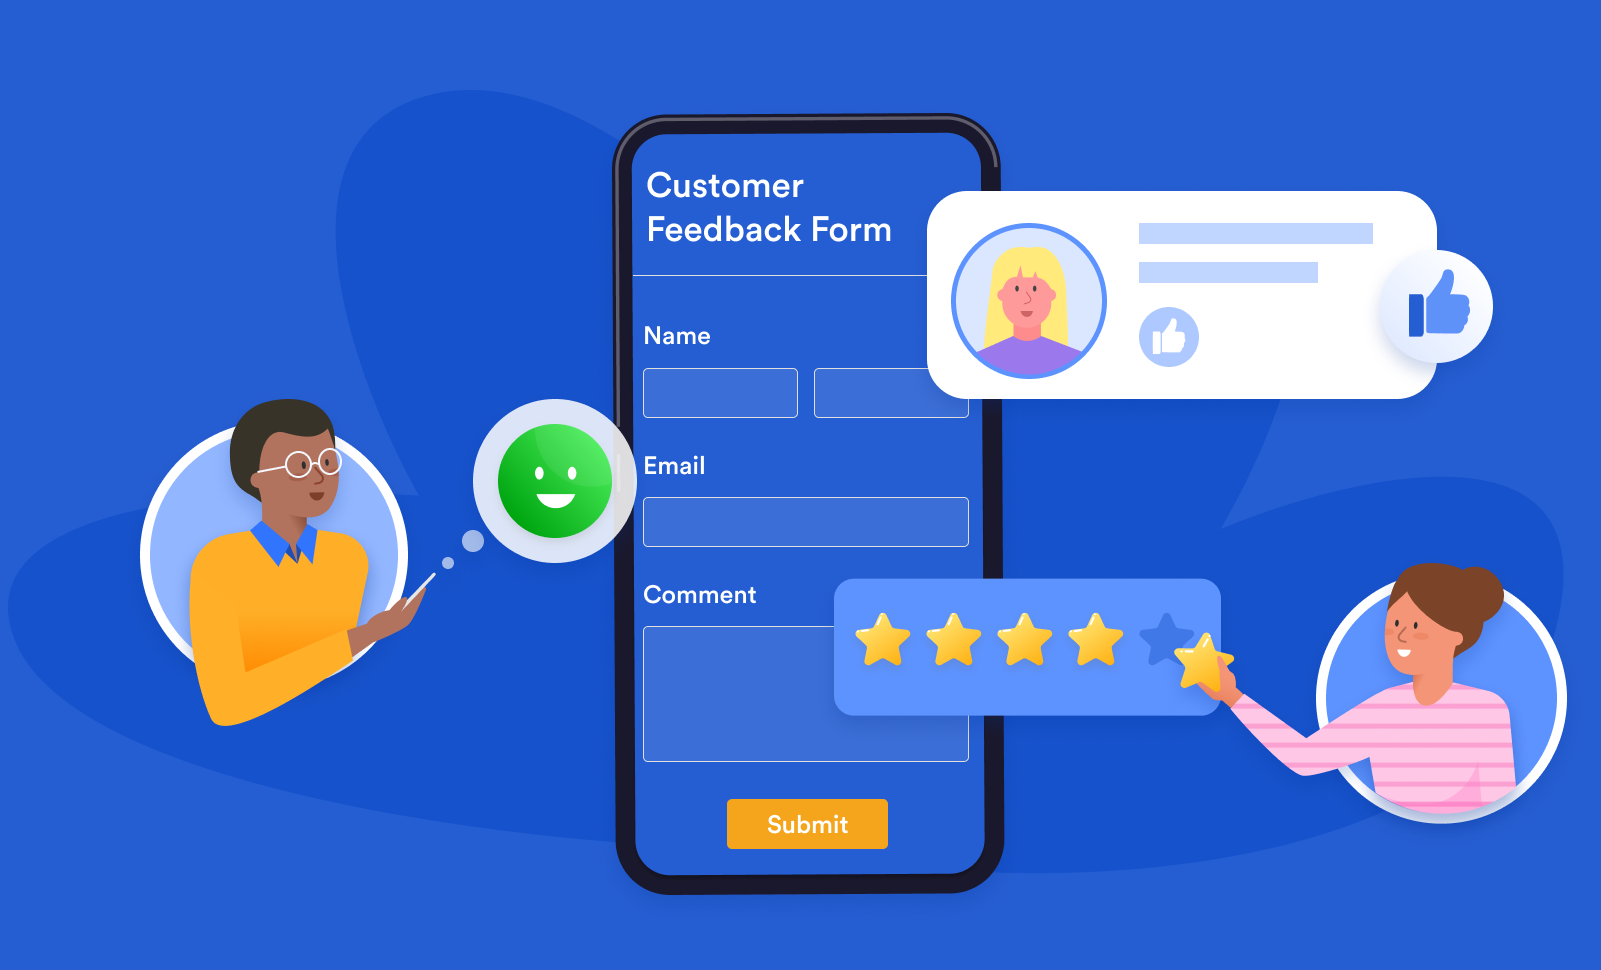 Customer Feedback: How to Collect It, Respond to It, and Get Great Results